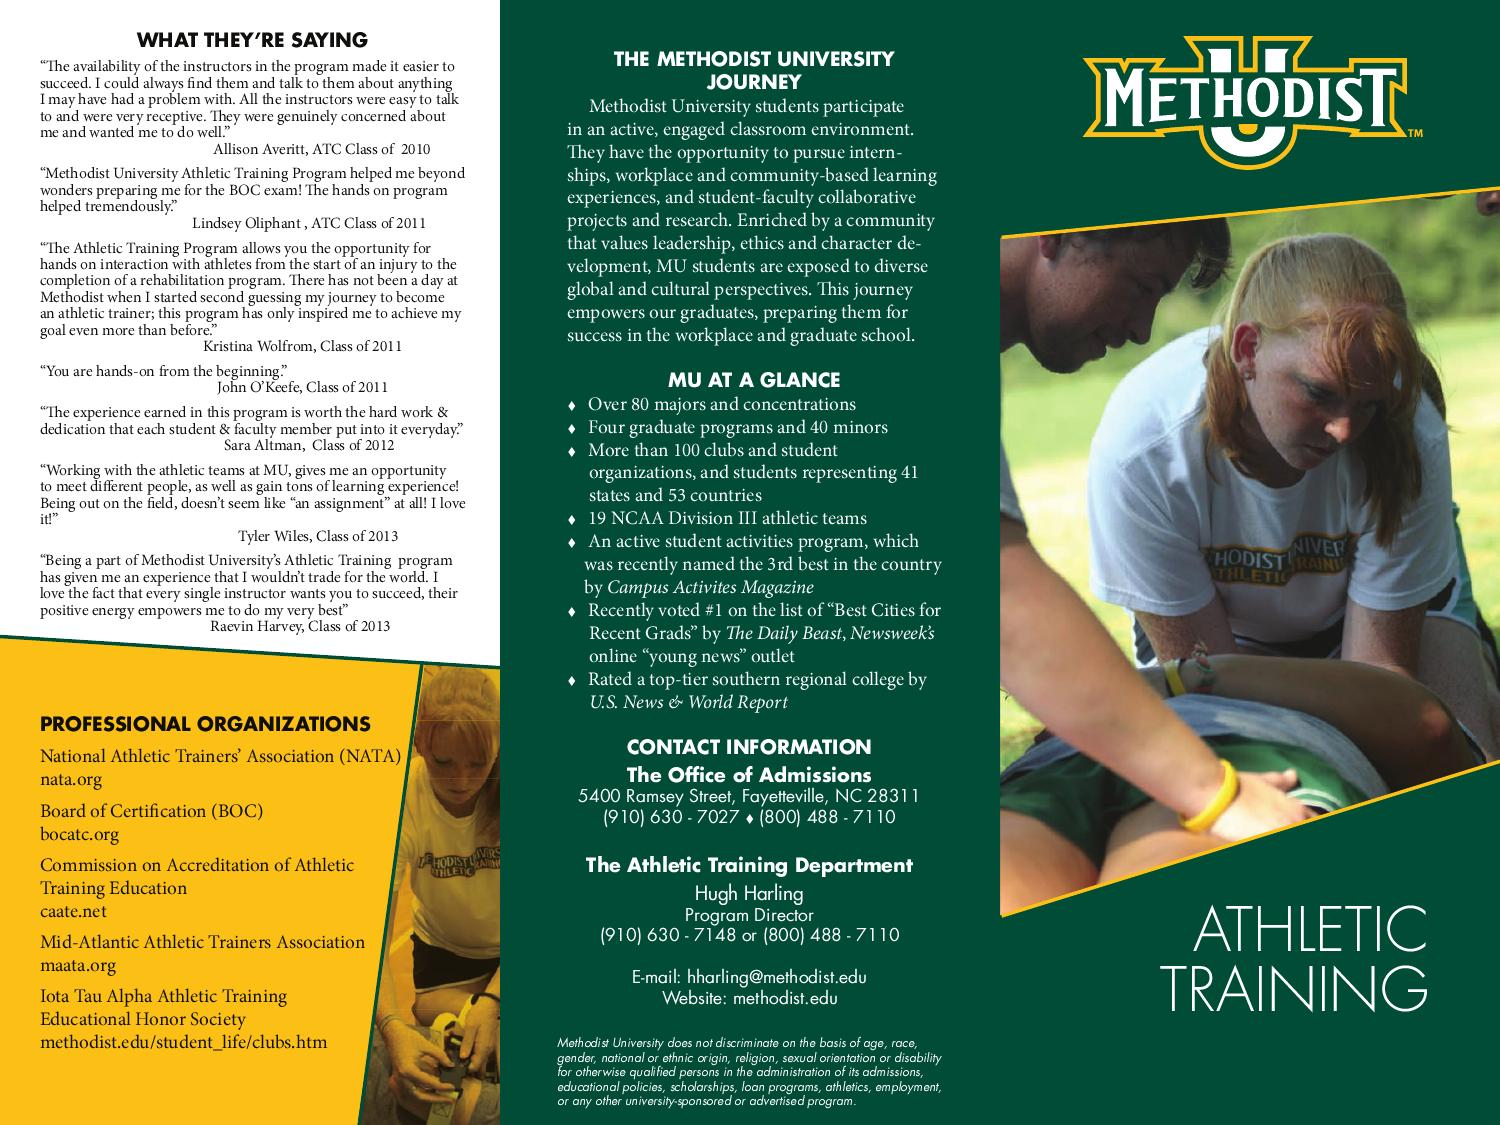 Athletic Training By Methodist University Issuu